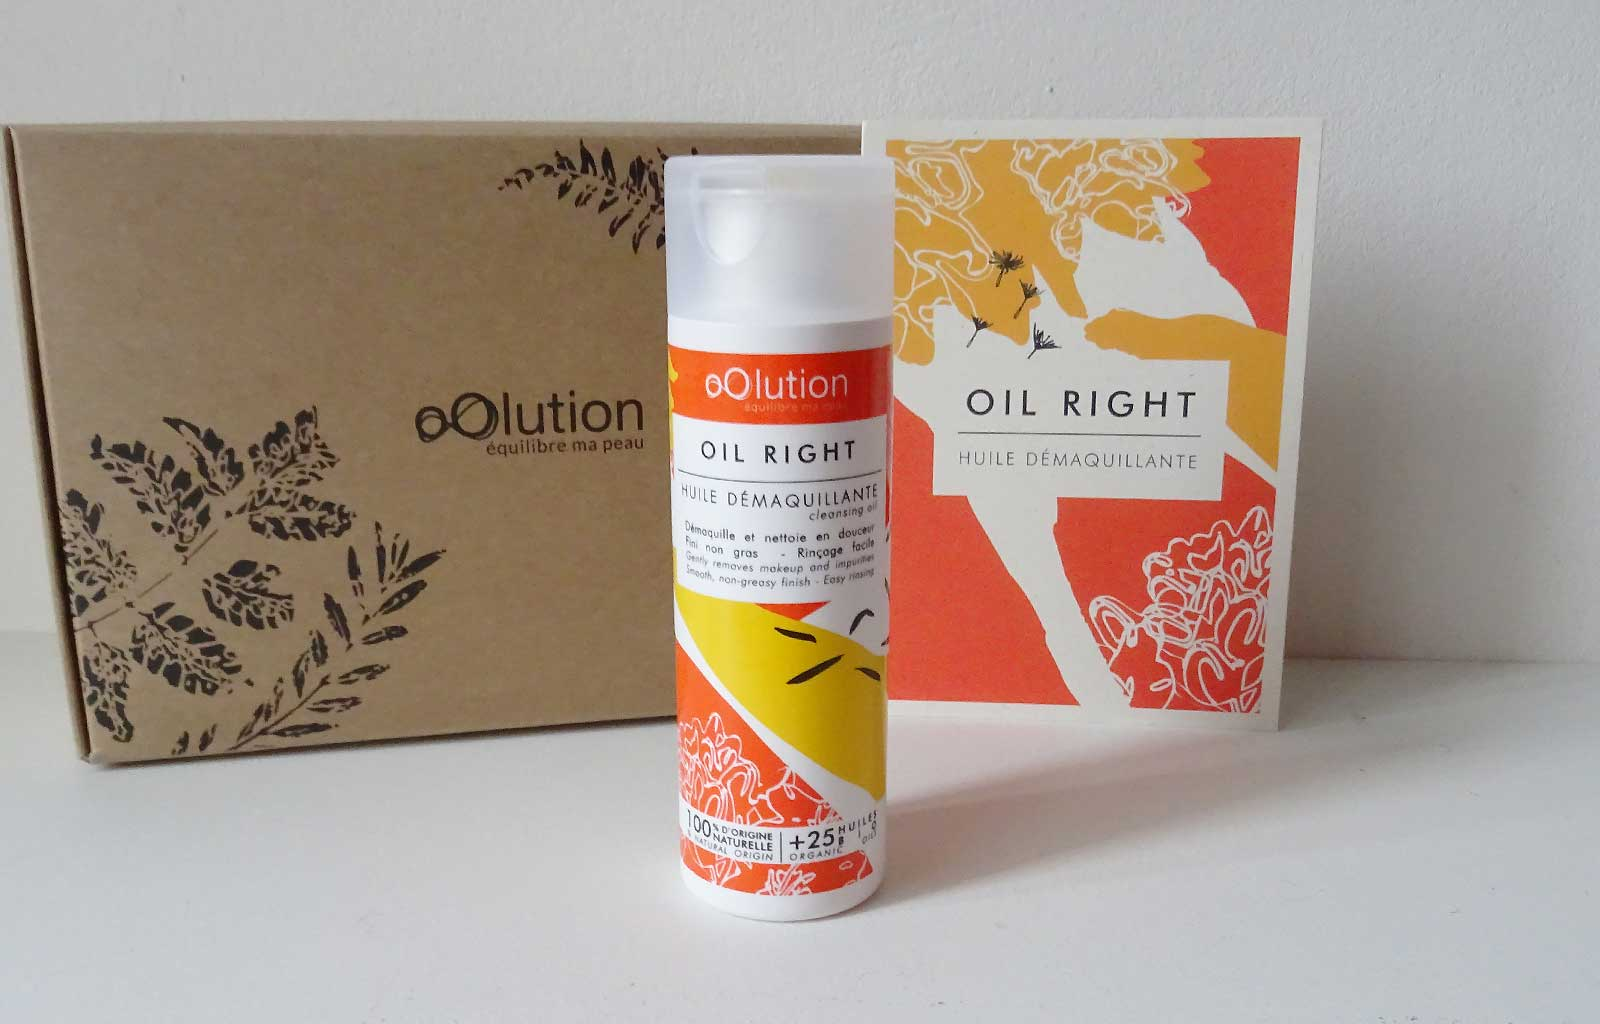 démaquillant huile Oil Right oOlution